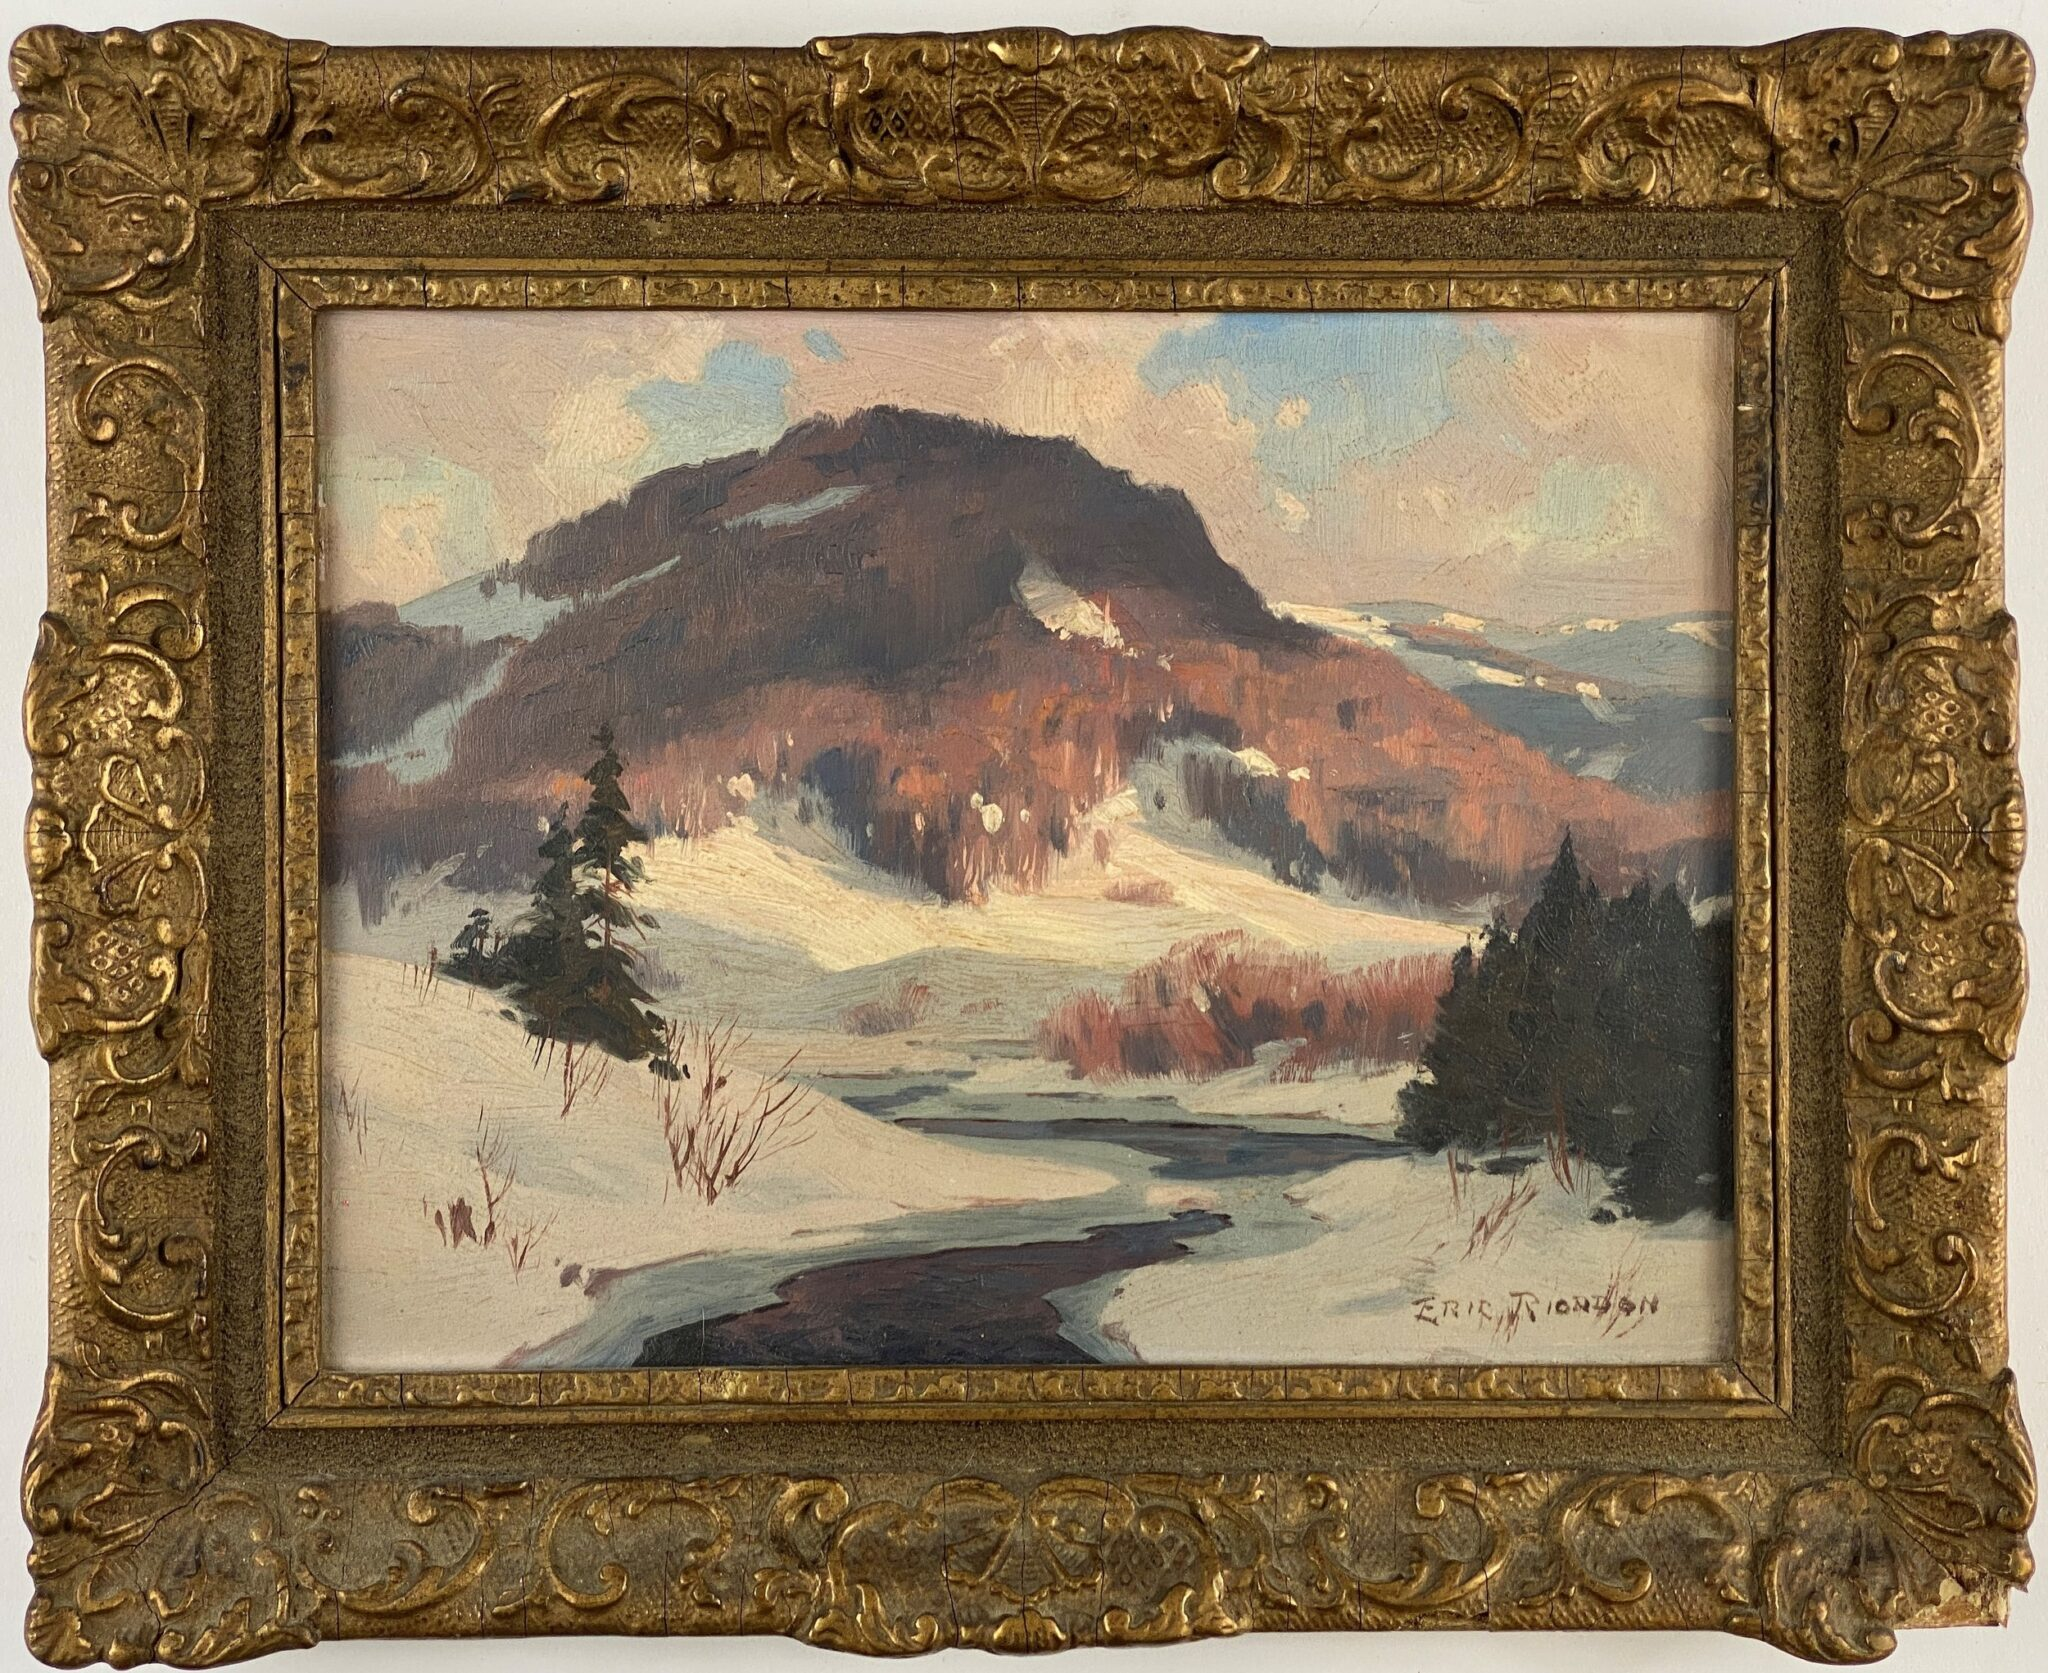 Eric John Benson Riordan (Canadian, 1906-1948) | Sold for $8,125